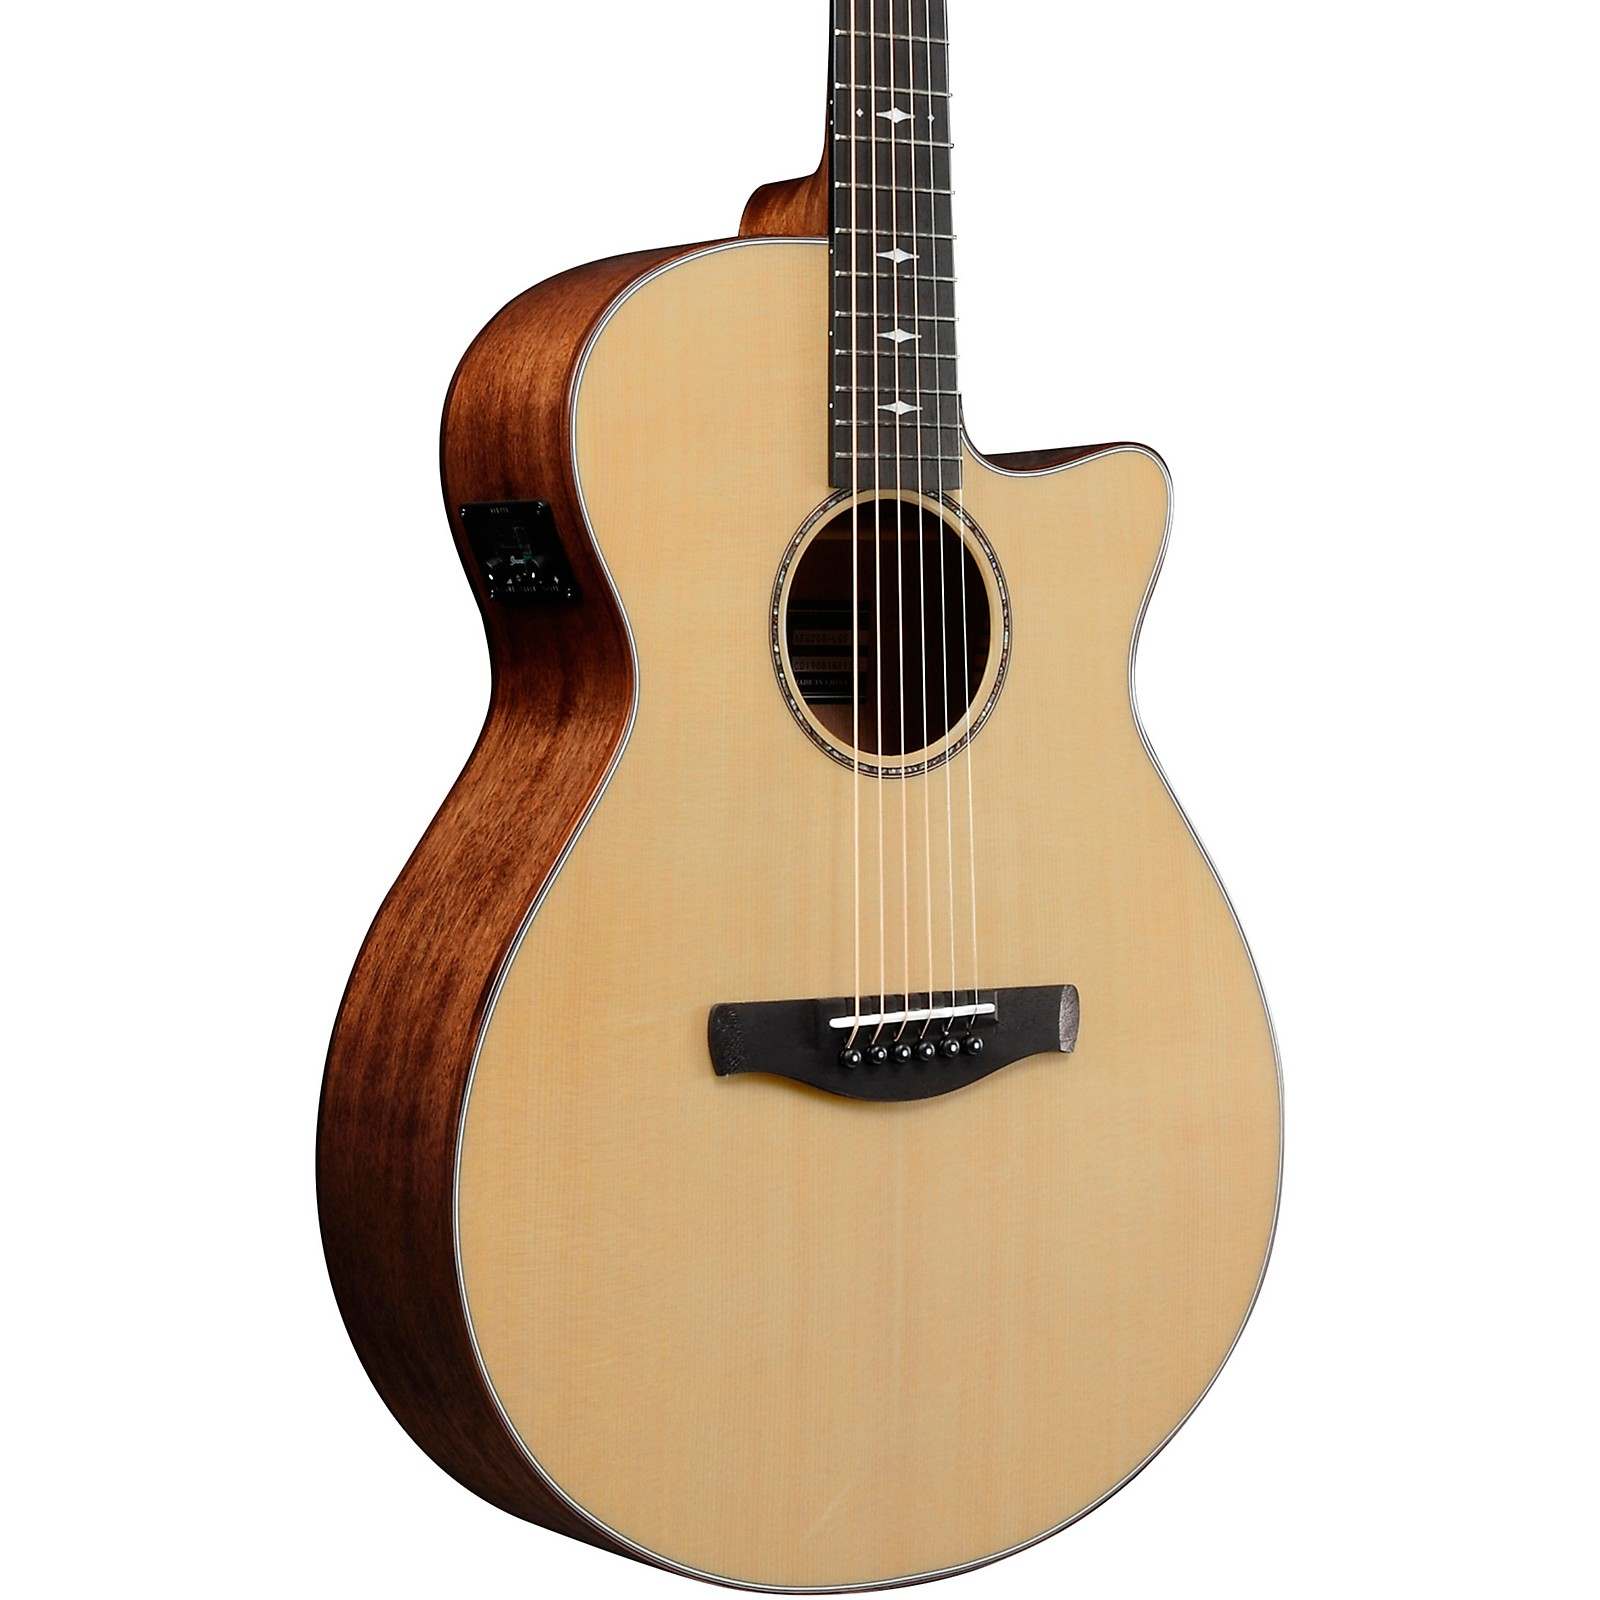 Ibanez AEG200 Solid Top Grand Concert Acoustic-Electric Guitar